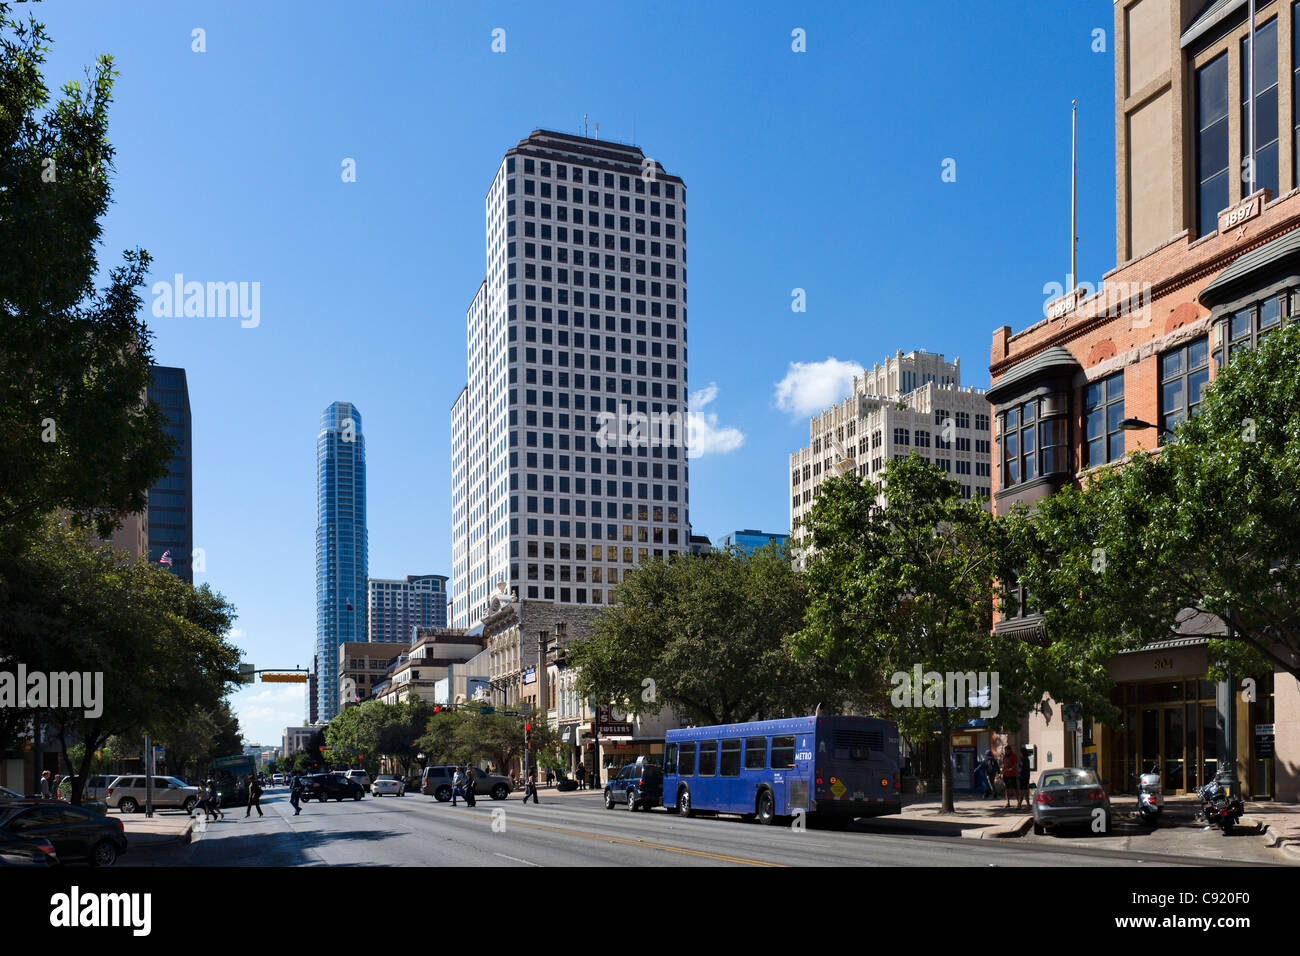 Congress Avenue in historic downtown Austin, Texas, USA - Stock Image